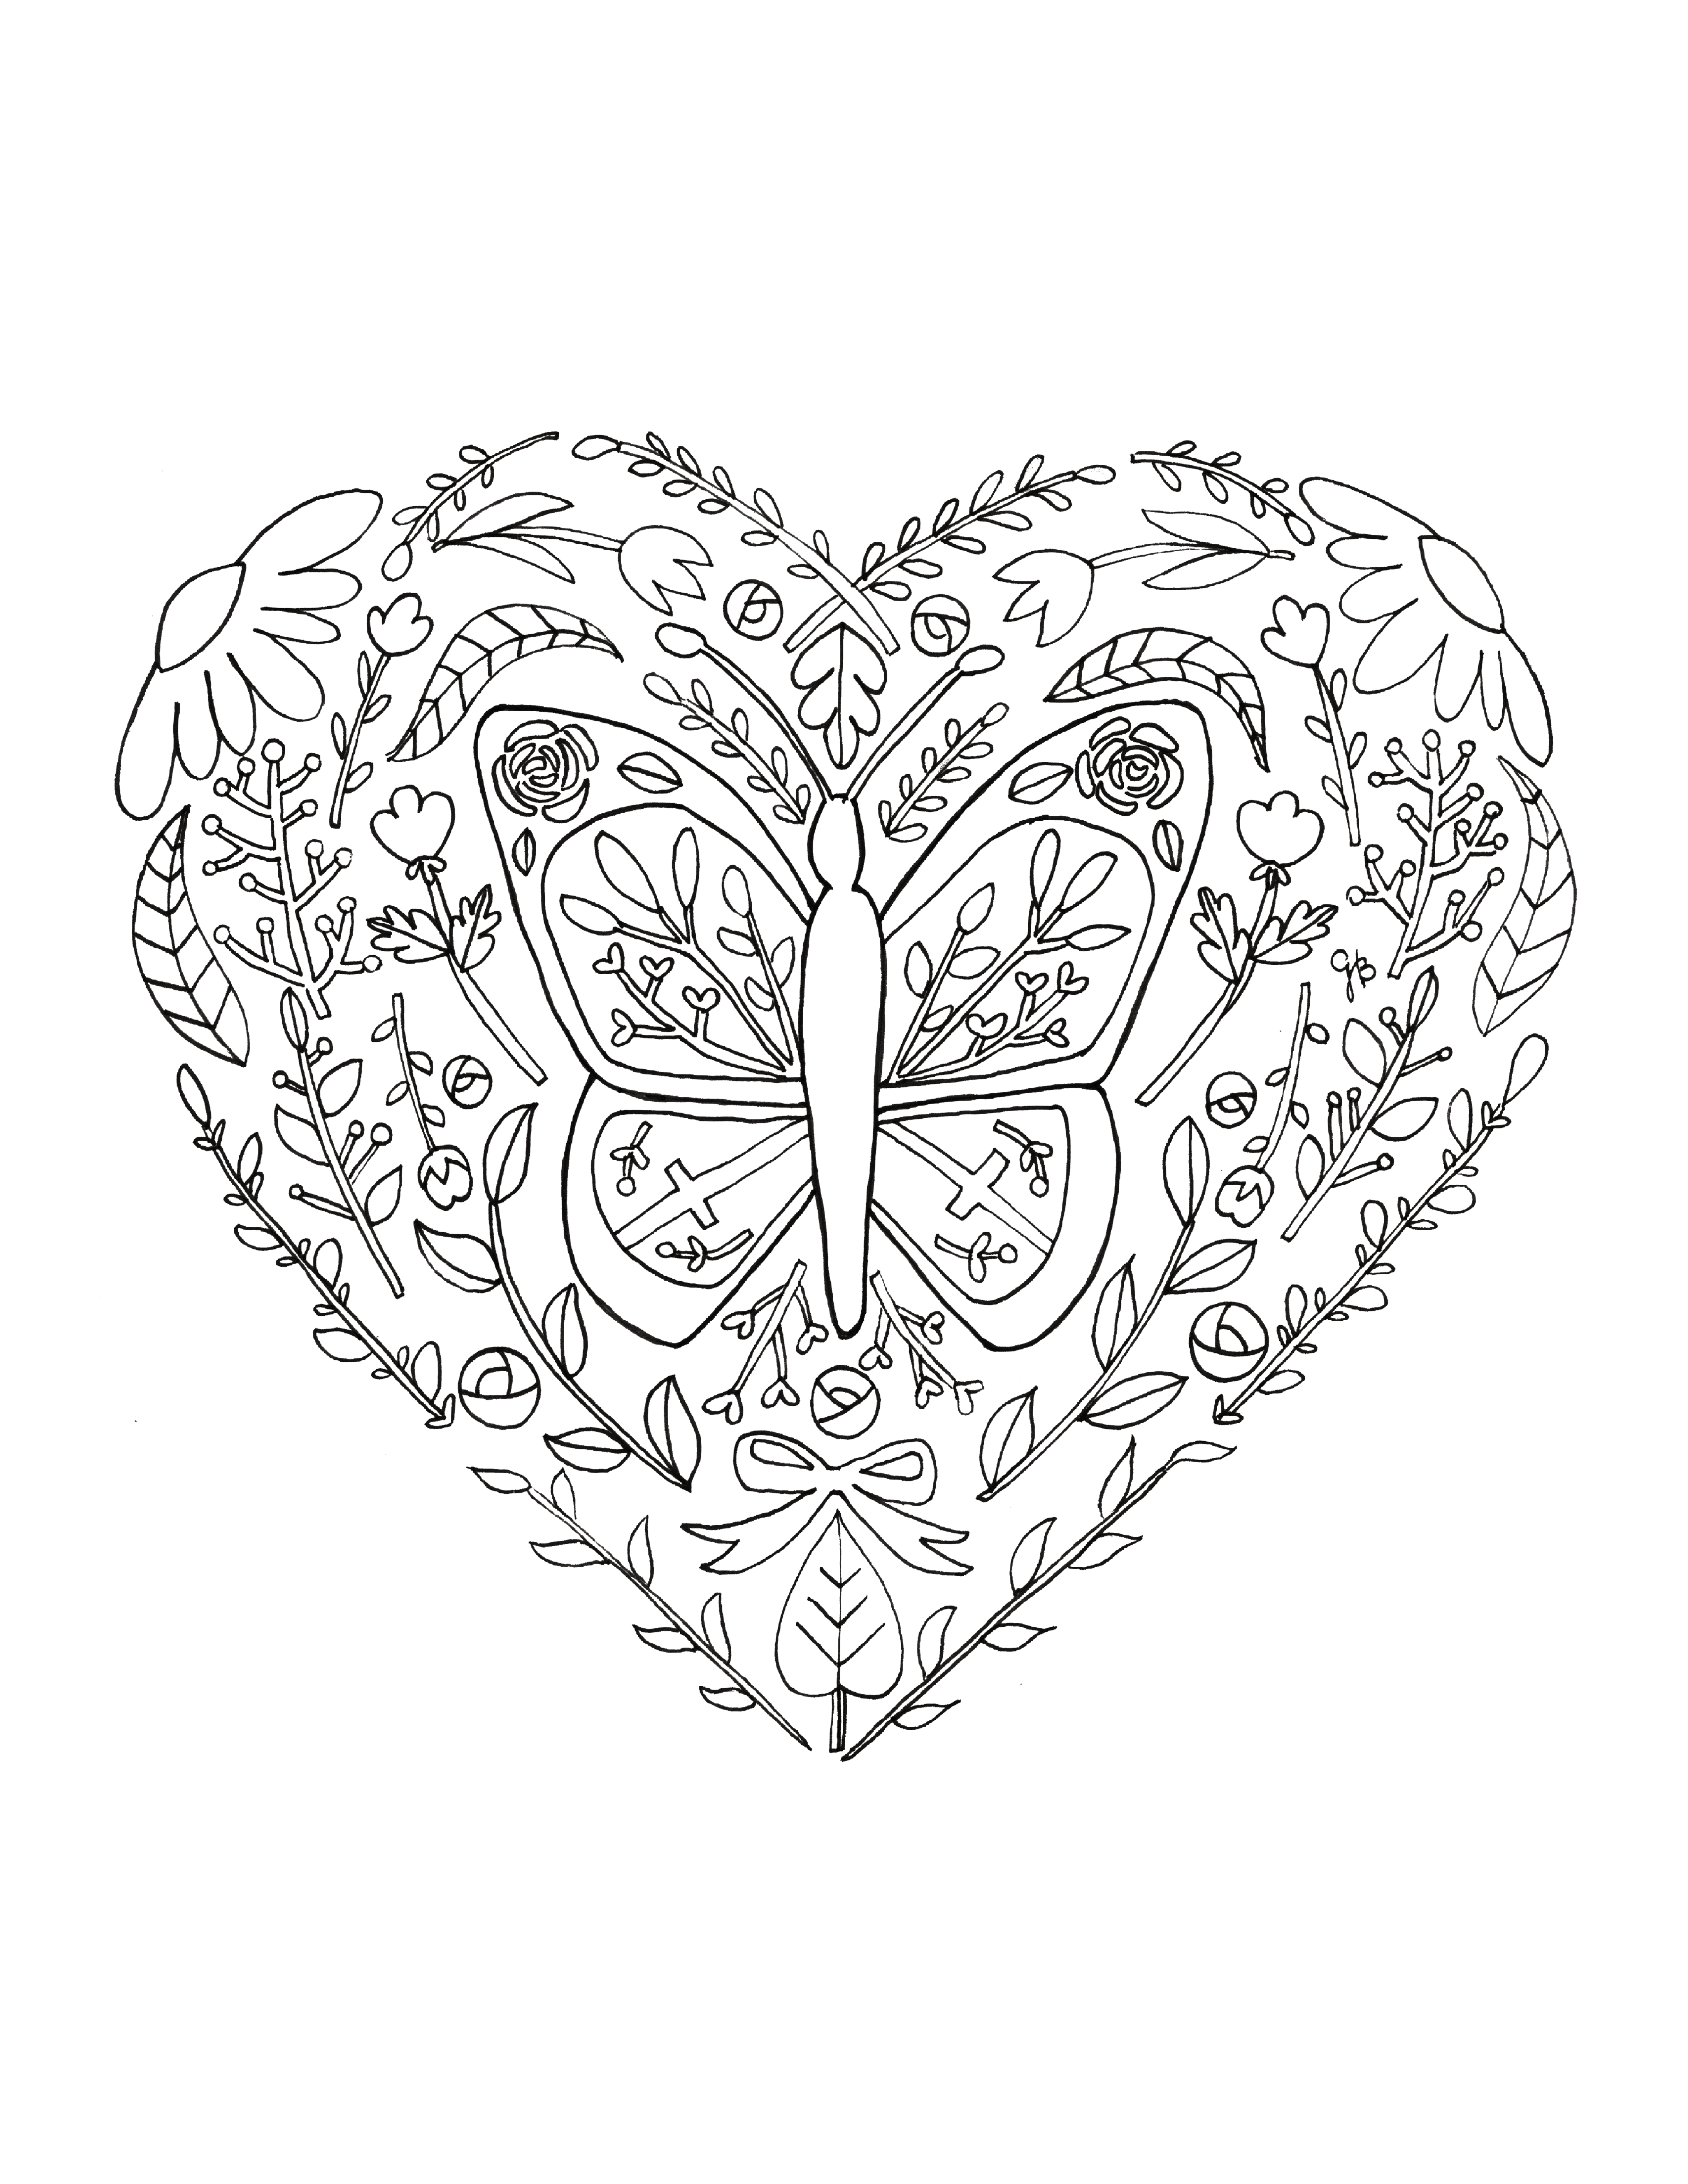 Free Butterfly Heart Coloring Page Inspired By Johanna Basford Hand Drawn By Gabriella Balagna Heart Coloring Pages How To Draw Hands Coloring Pages